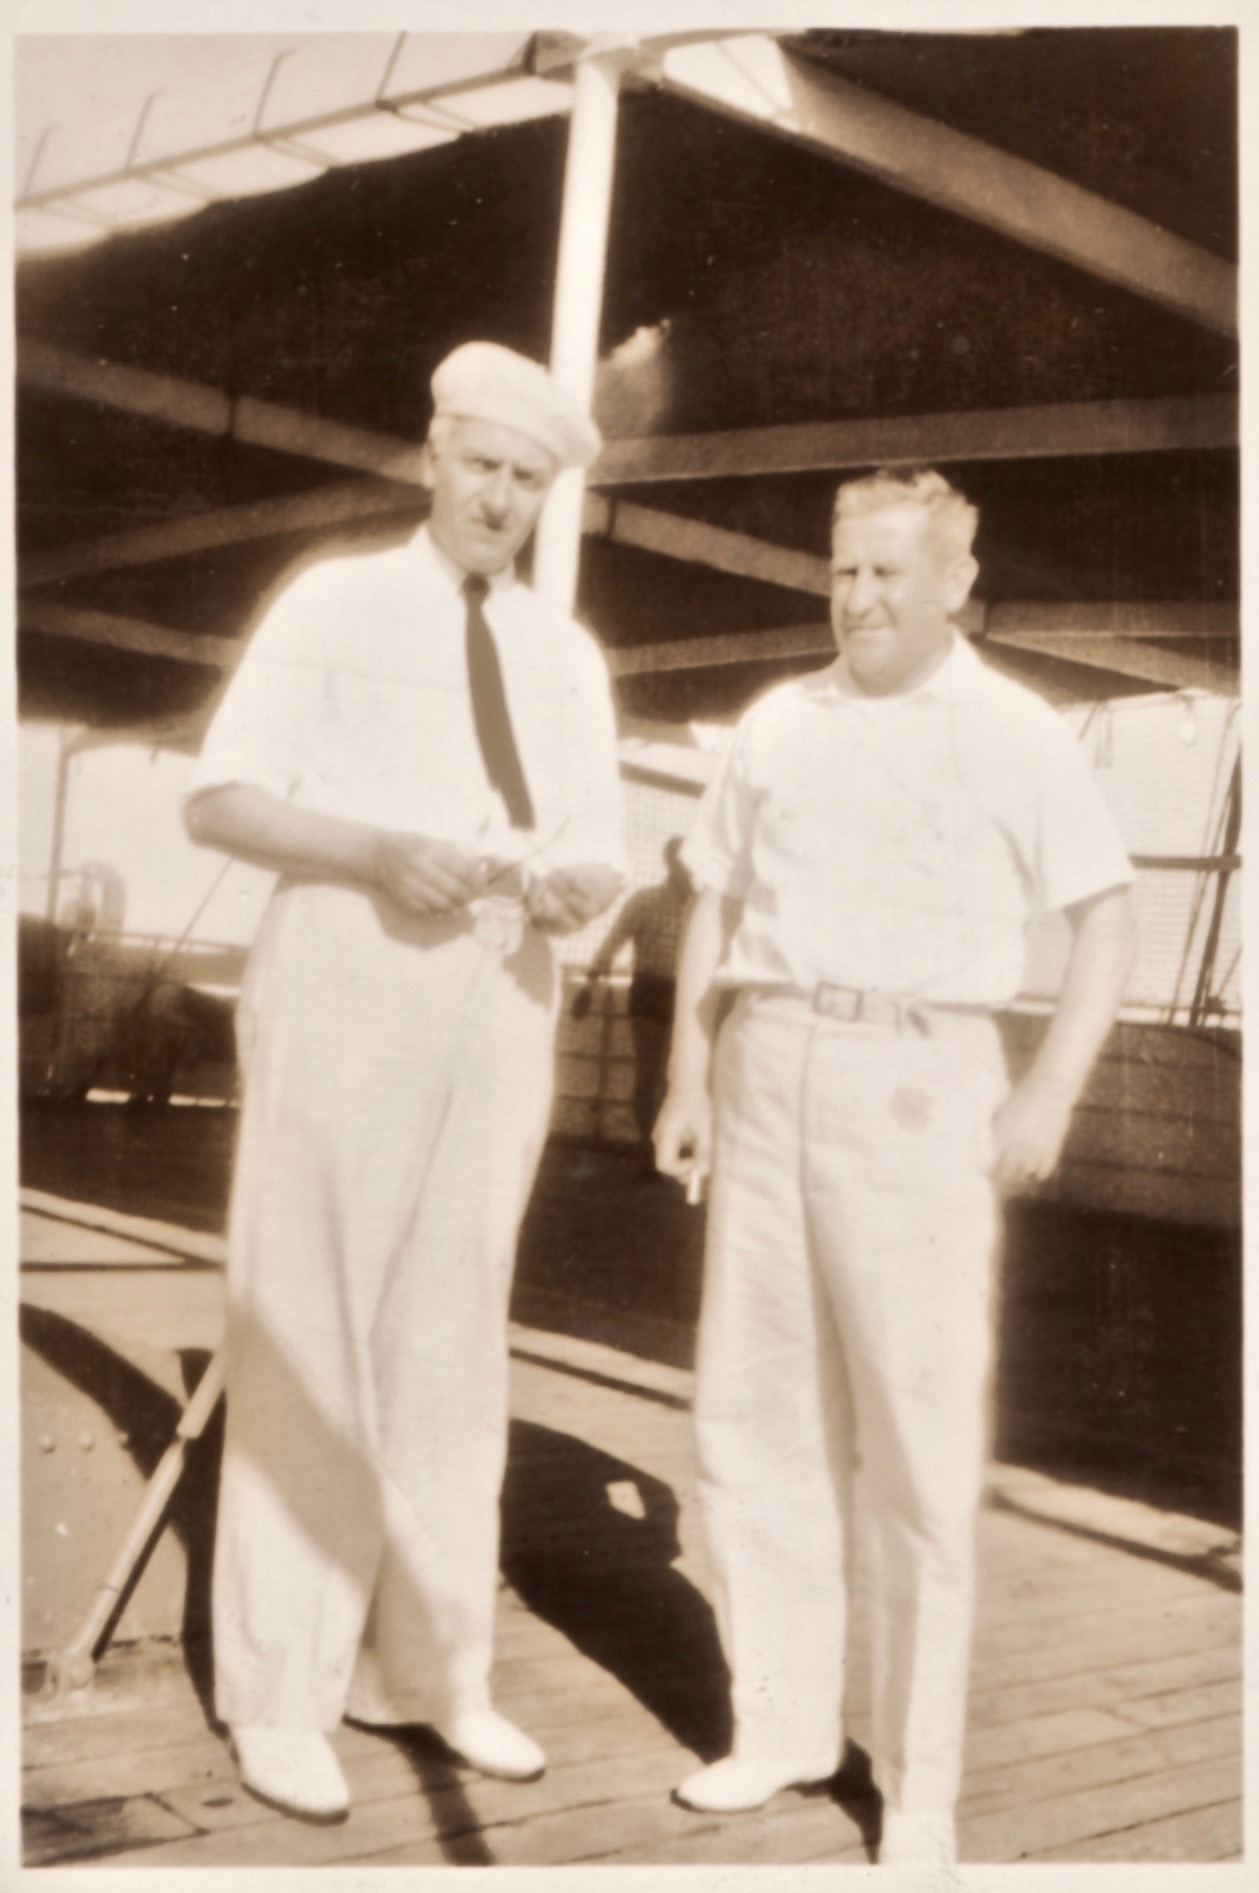 In a photo from a family album, Starrett is shown with  Admiral William H. Allen  aboard the Dollar Line ship the SS President Wilson, probably on their way from California to a port in Asia. Thanks to Studies in Starrett friend Ira Matetsky for sorting out the details.